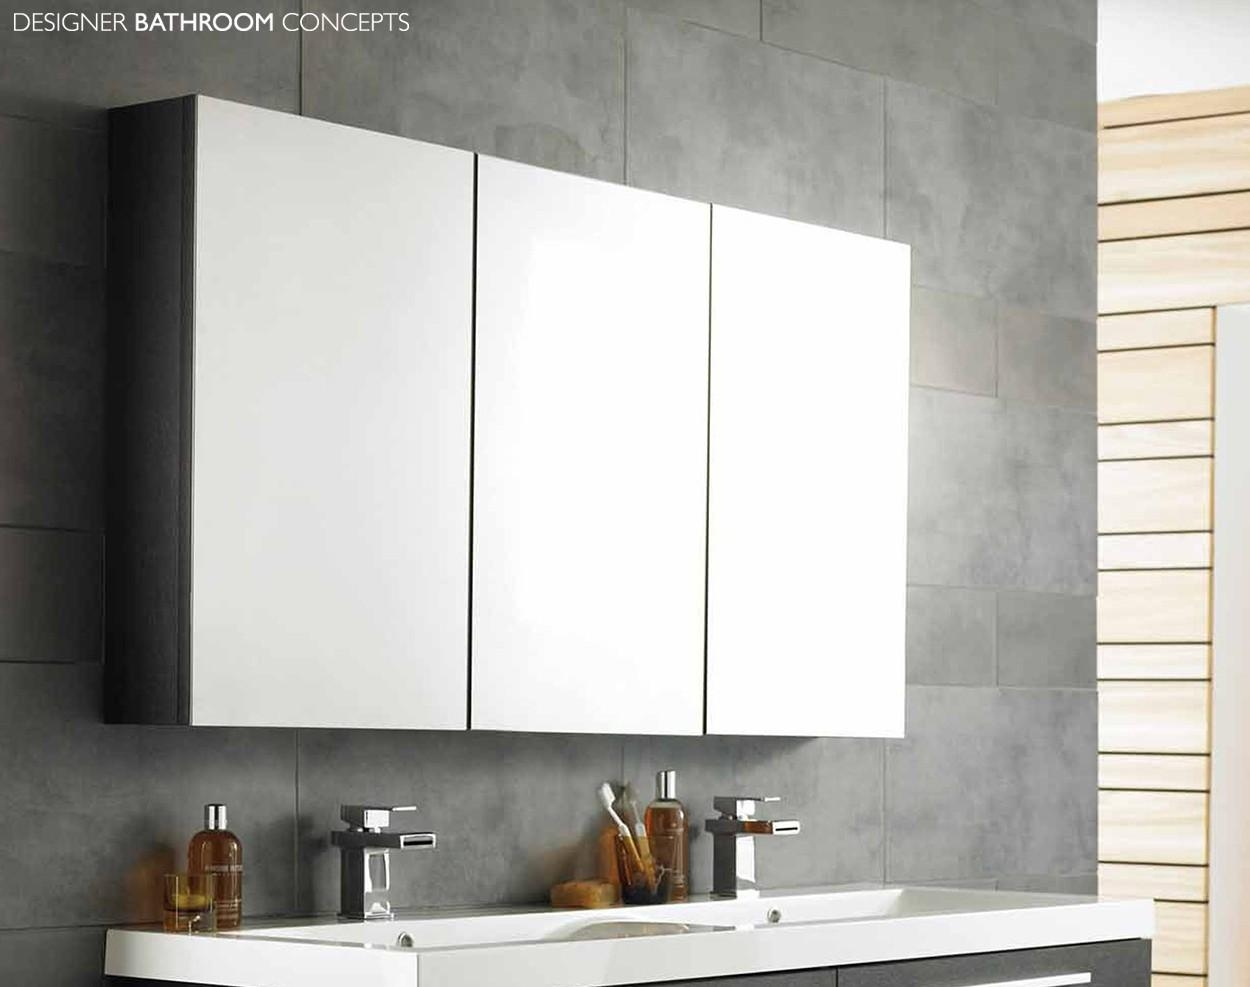 Bathroom Cabinets : Mirror Cabinet For Bathroom Cabinets With For Bathroom Cabinets Mirrors (Image 6 of 20)